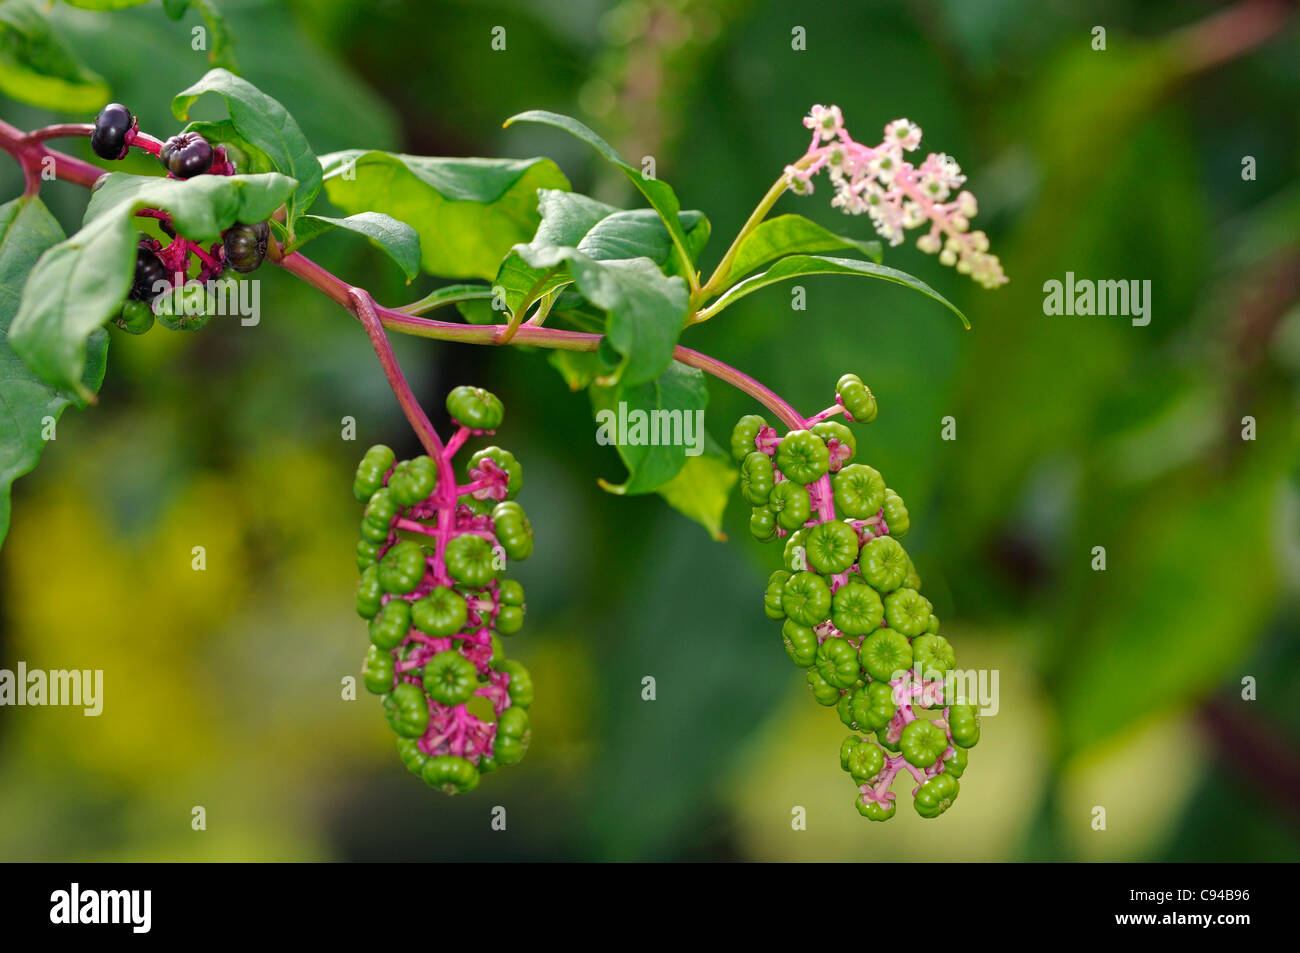 Flowers and immature infructescences of American Pokeweed (Phytolacca americana) Stock Photo